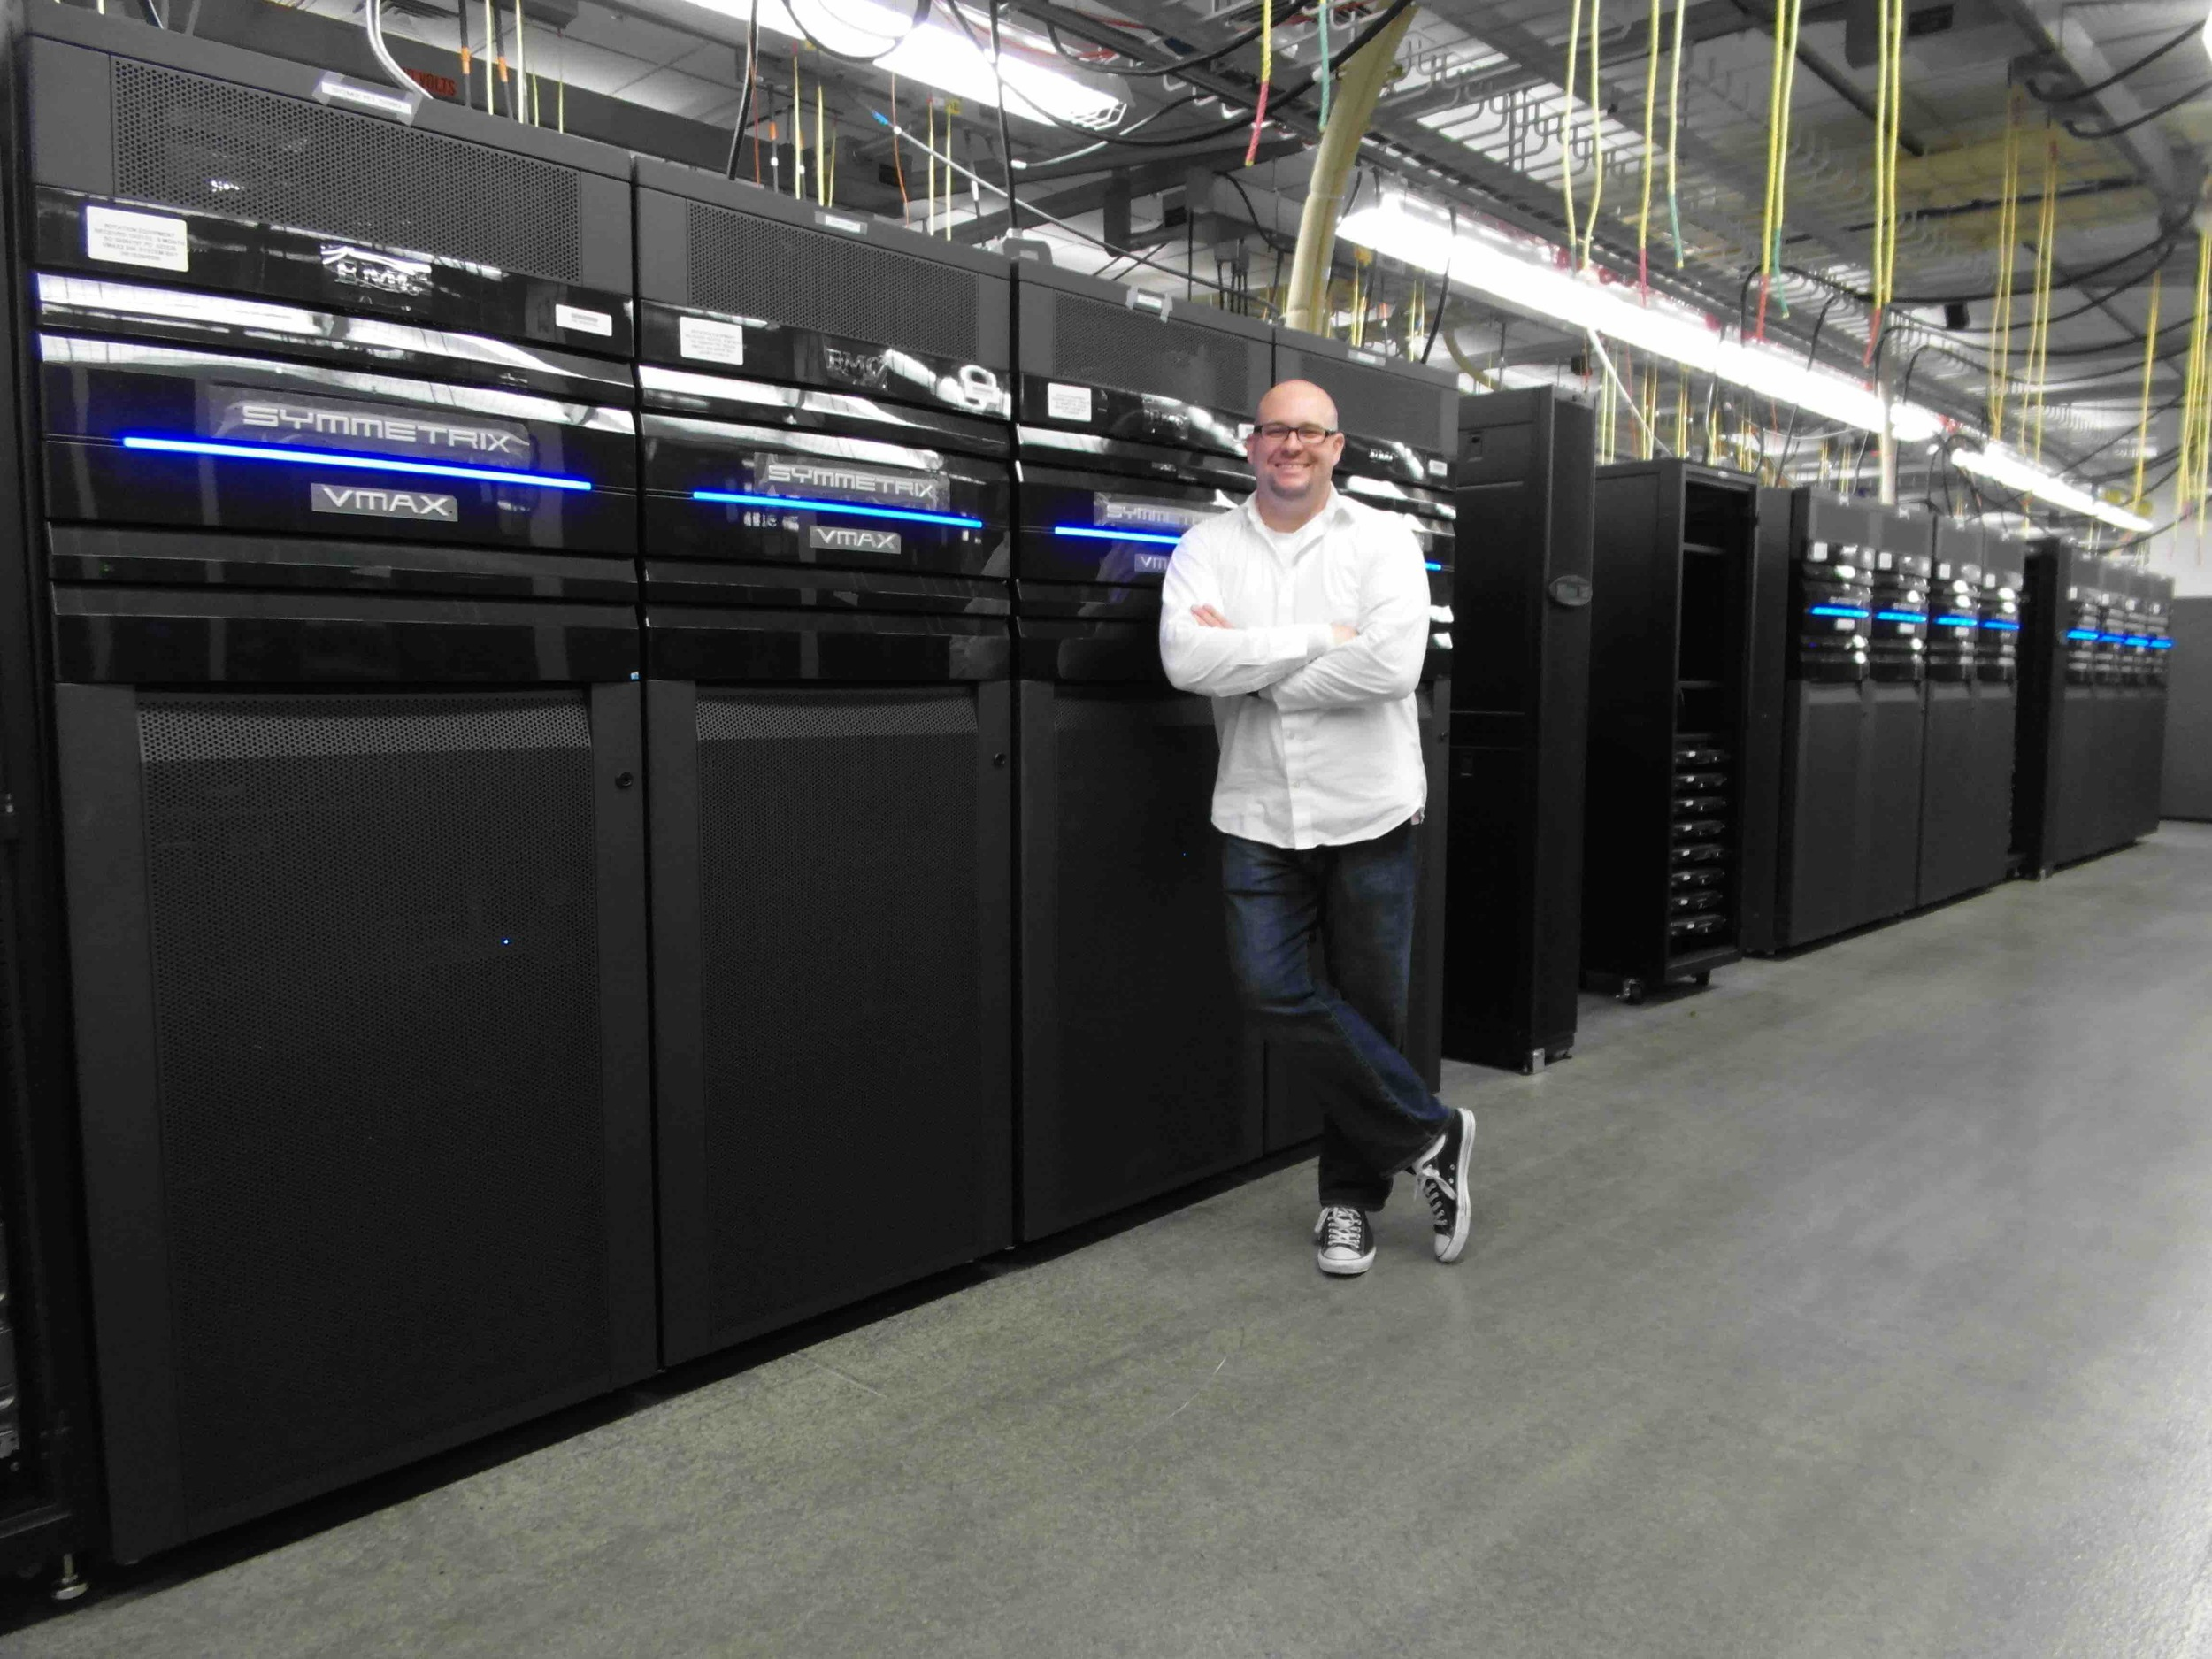 Quick photo while working on some Symmetrix VMAX Storage Arrays in the lab.